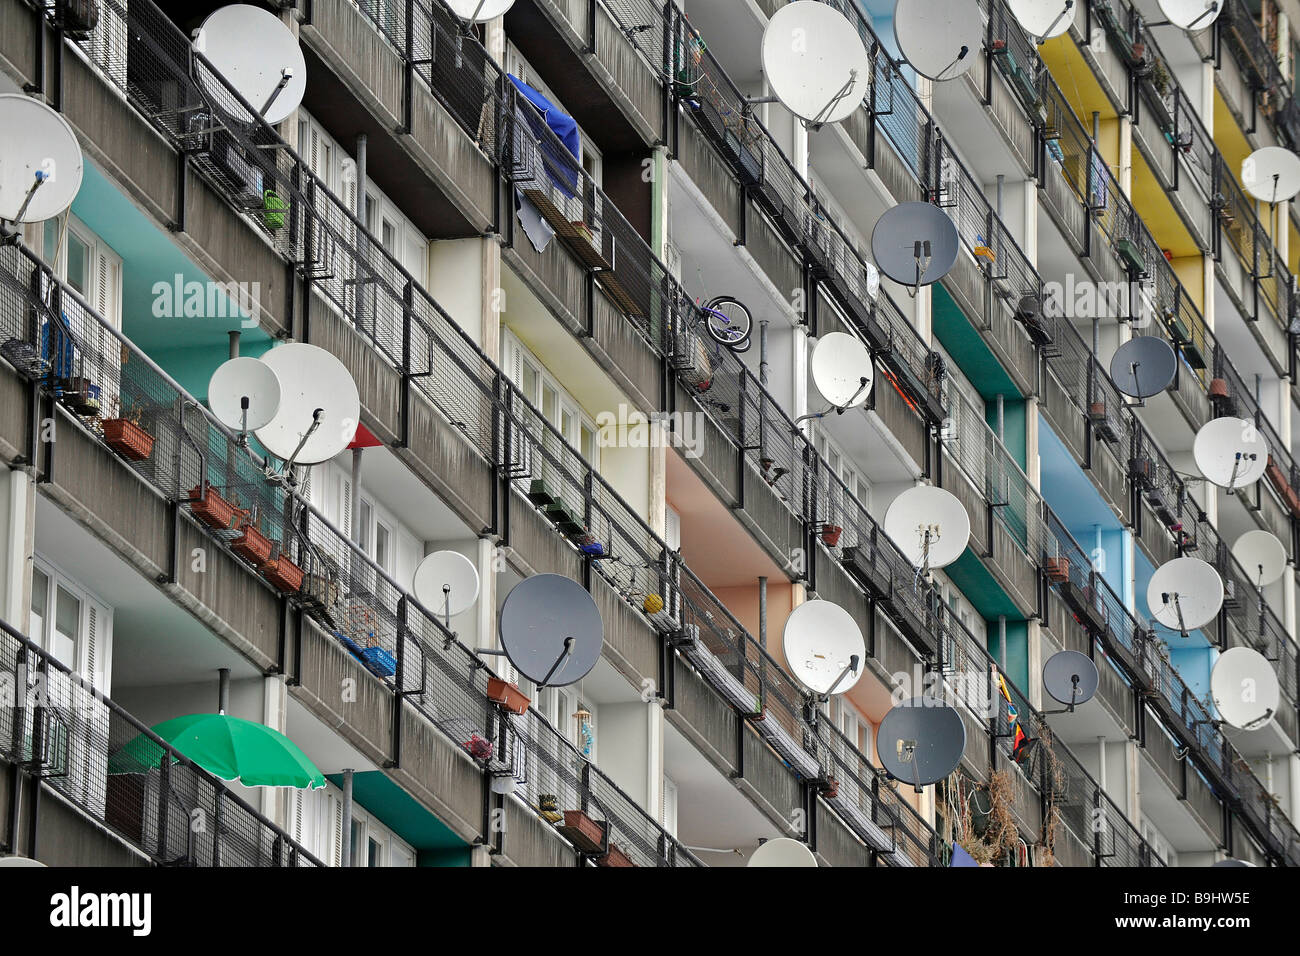 Satellite dishes on a seventies tenement building, Berlin, Germany, Europe - Stock Image